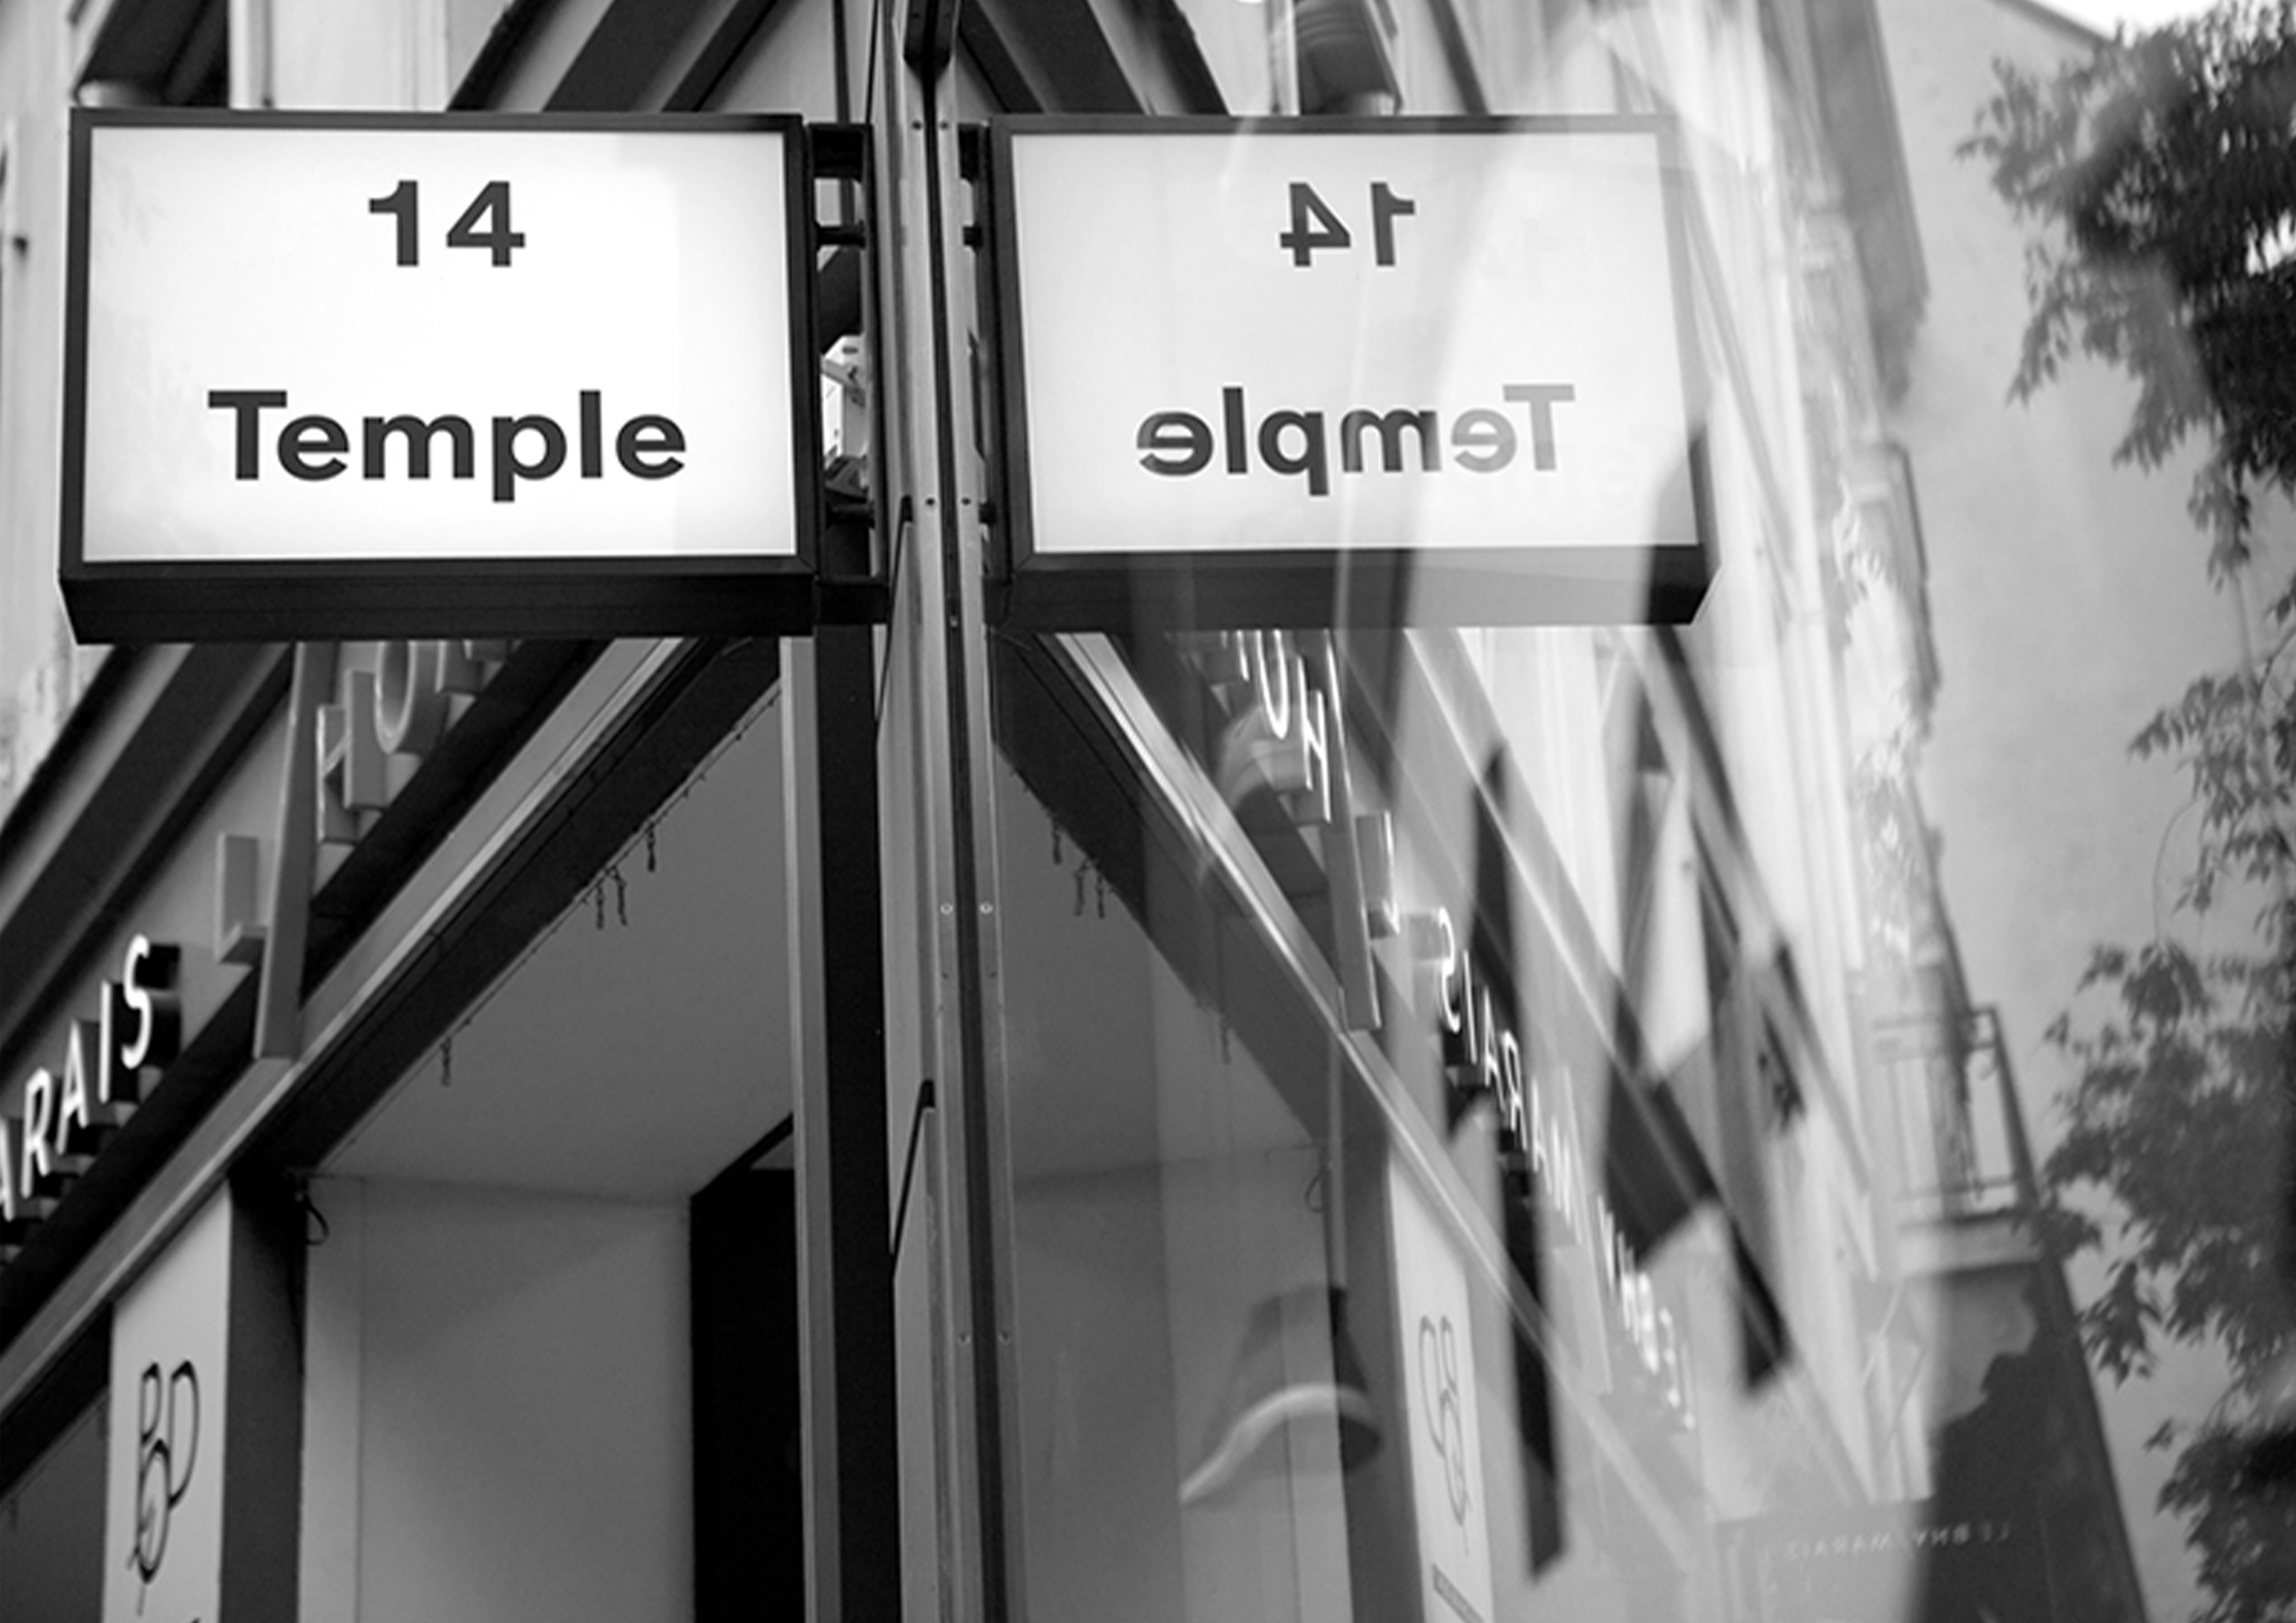 signaletique 14 temple BHV marais